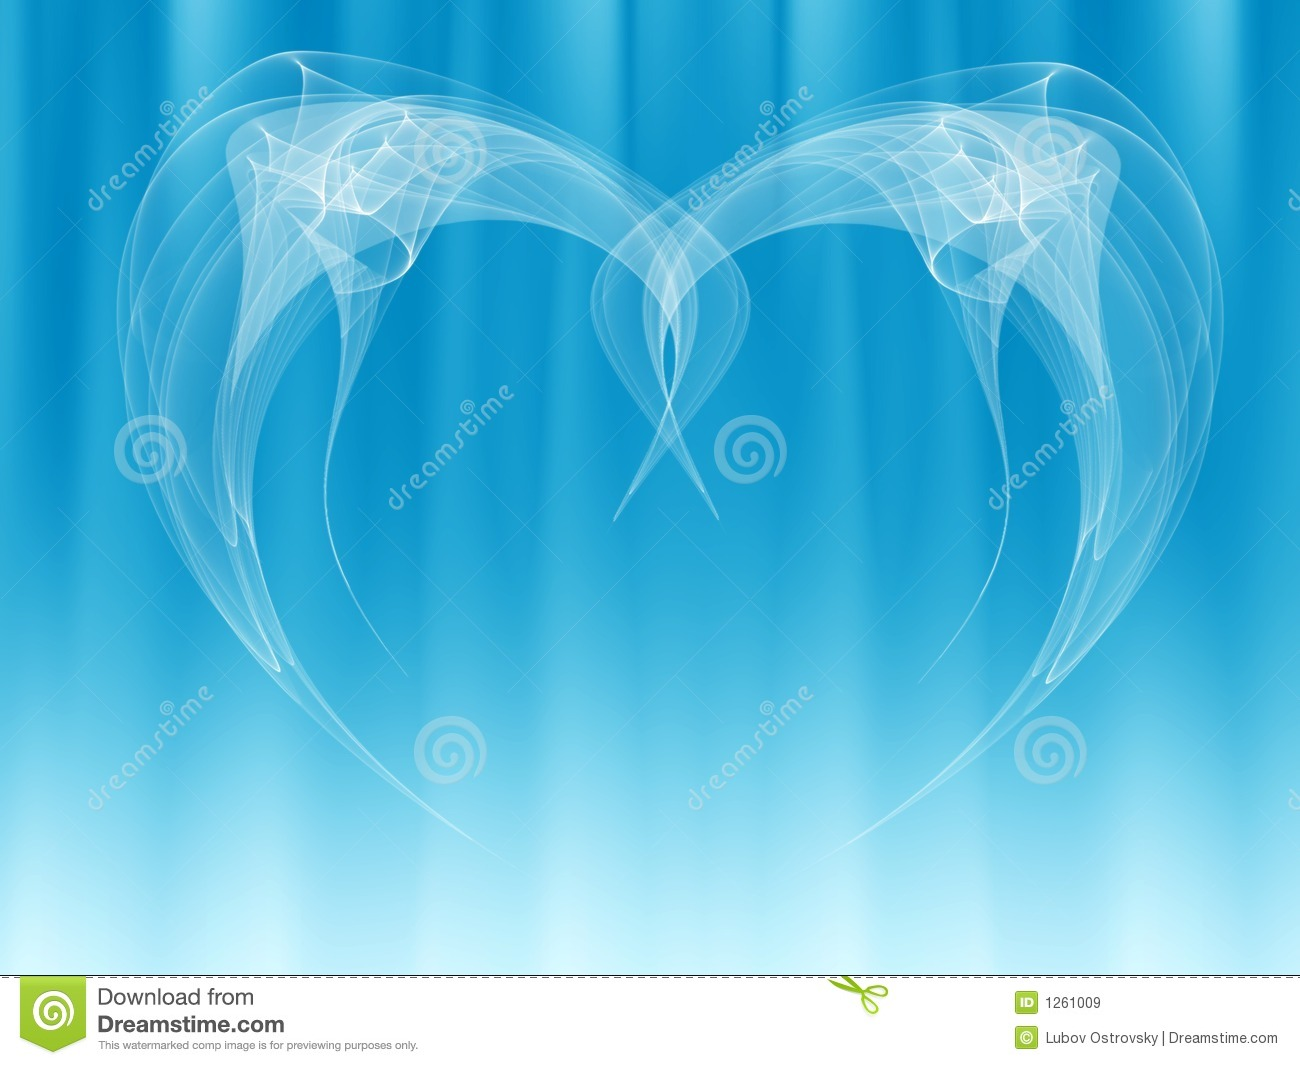 Angel Wings Abstract Royalty Free Stock Images - Image: 1261009